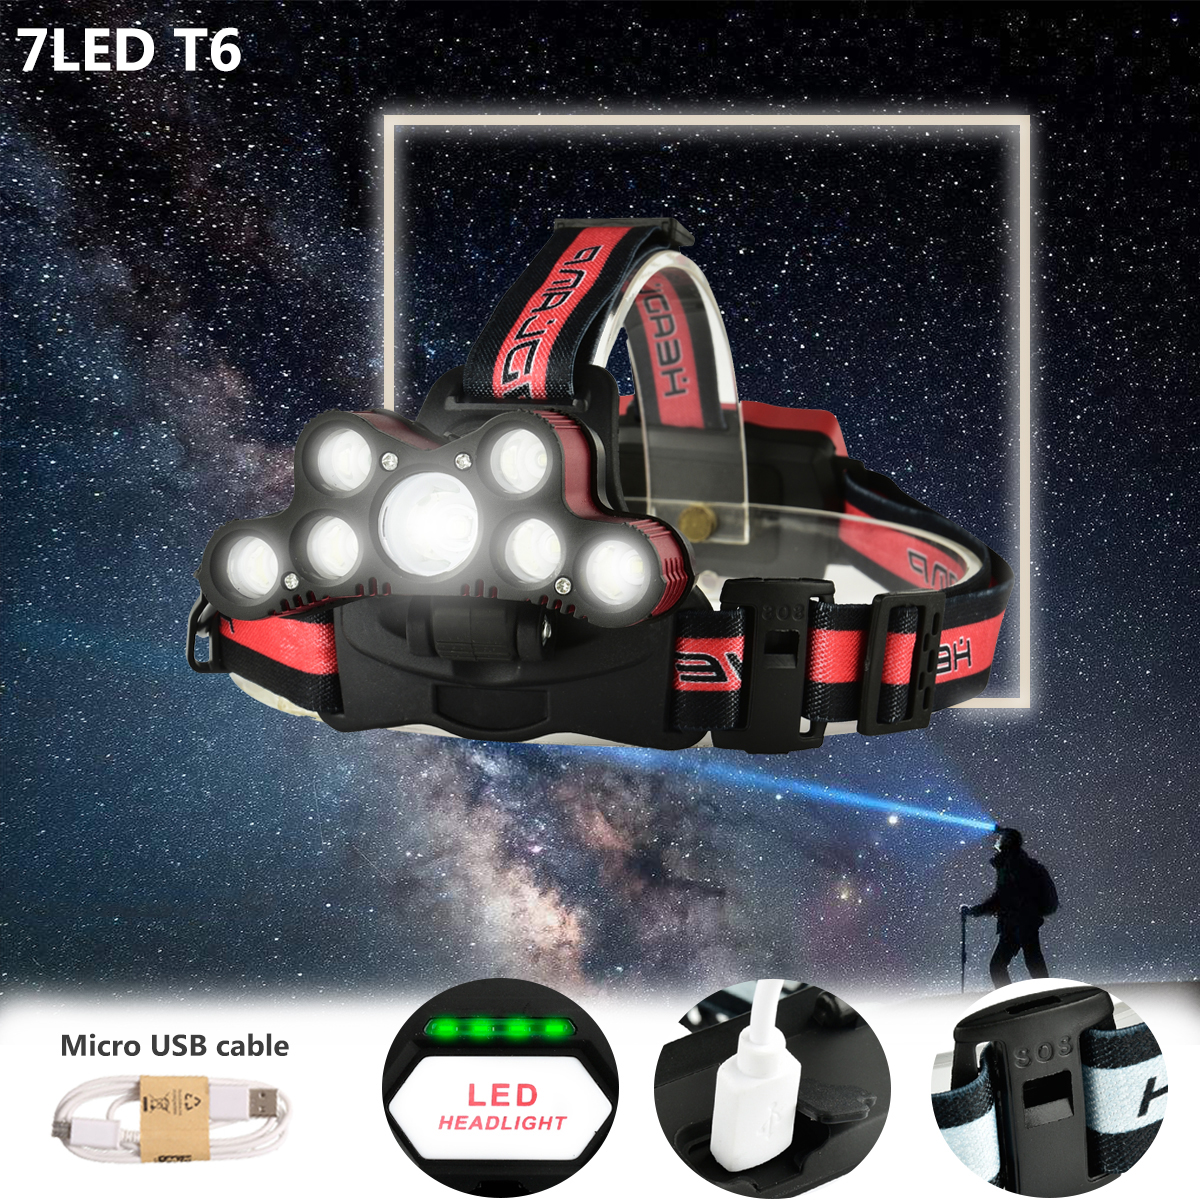 Elfeland 5000Lumens 7xT6 LED USB Rechargeable Headlight Headlamp Torch with SOS Help Whistle 6 Modes For Camping Hiking